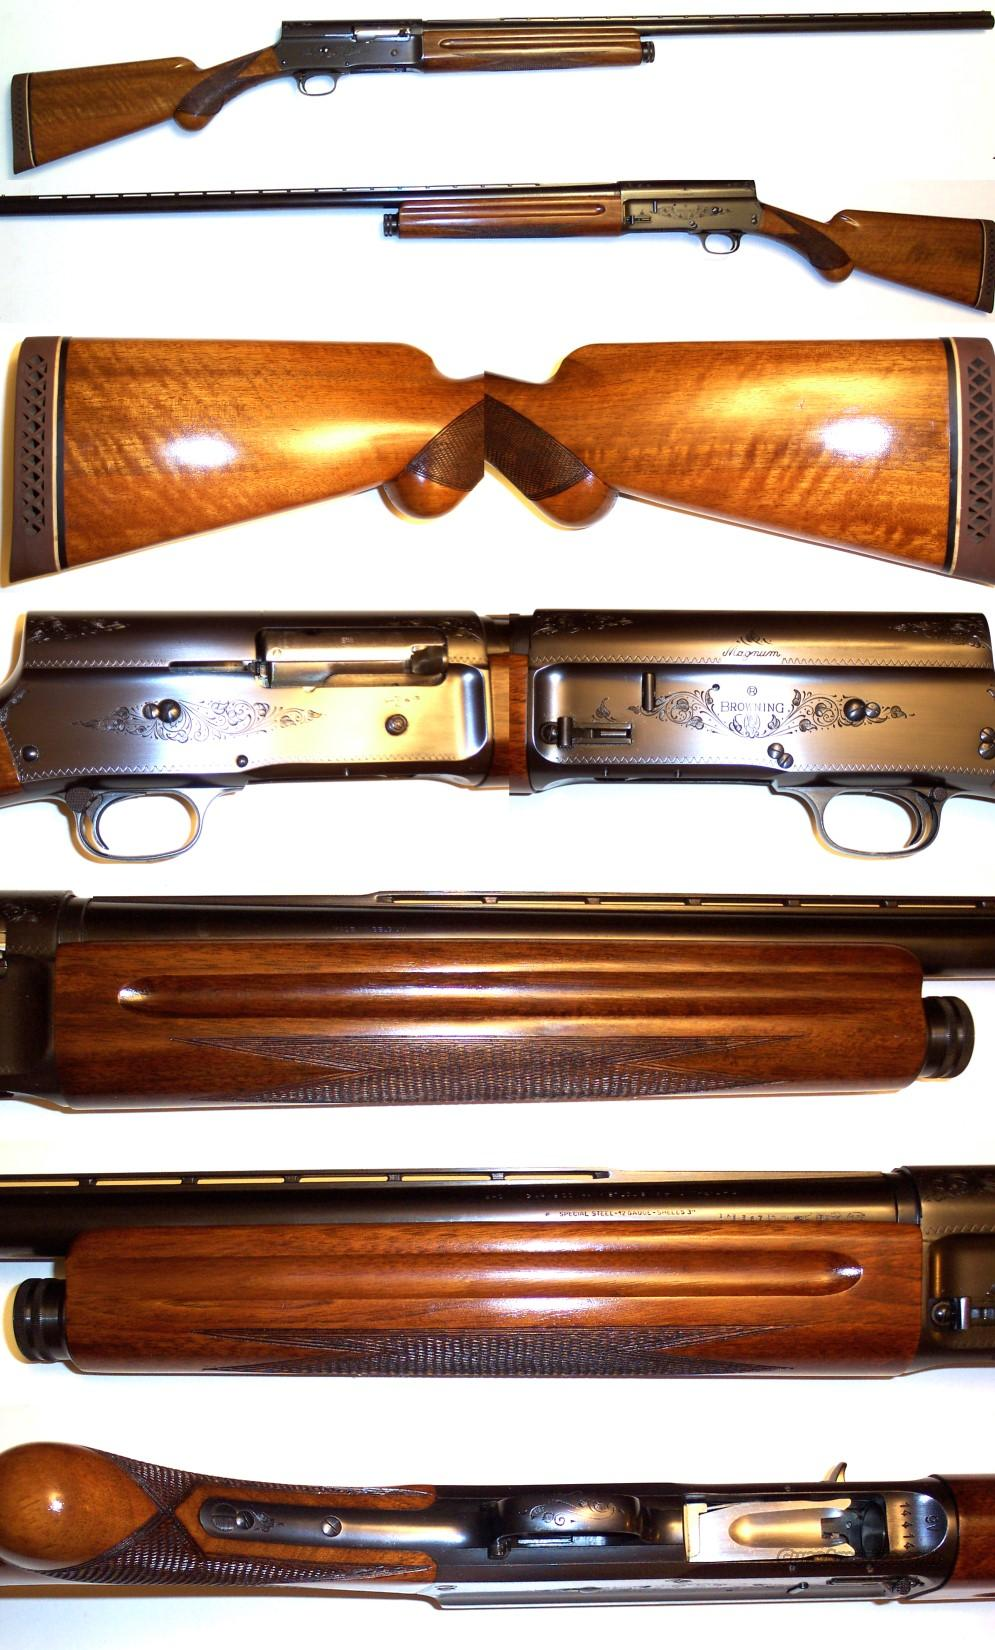 "'59 Belgium Browning A5 MAG12 32"" collector condition  Guns > Shotguns > Browning Shotguns > Autoloaders > Hunting"